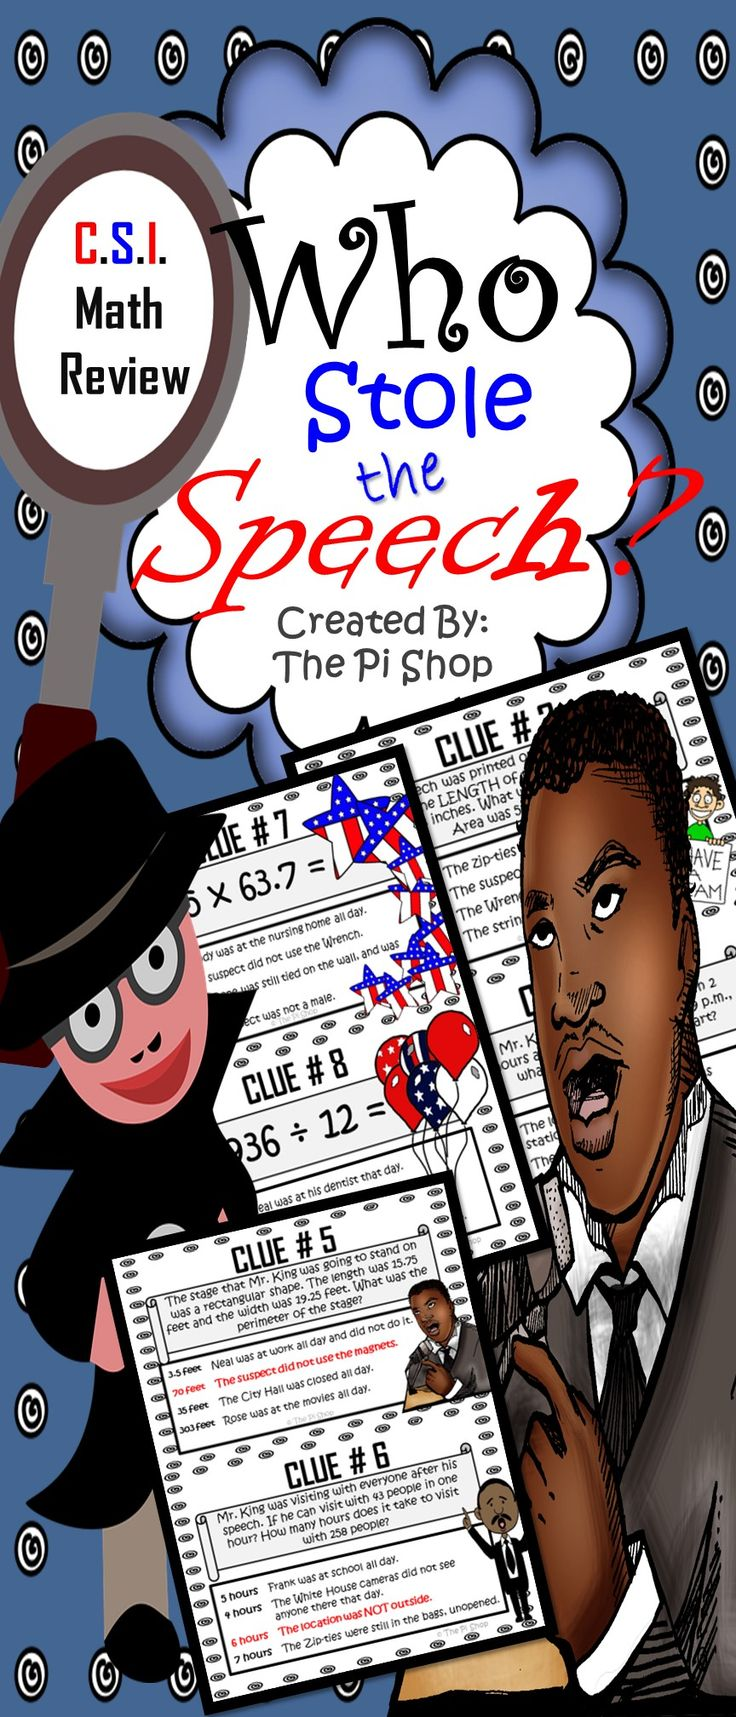 This is a CSI Math Review for grades 4-8 with mixed review. This is a Martin Luther King Jr. Themed CSI and you must help solve the mystery. It is a lot like a game of CLUE, only you must complete math problems in order to solve the puzzle.